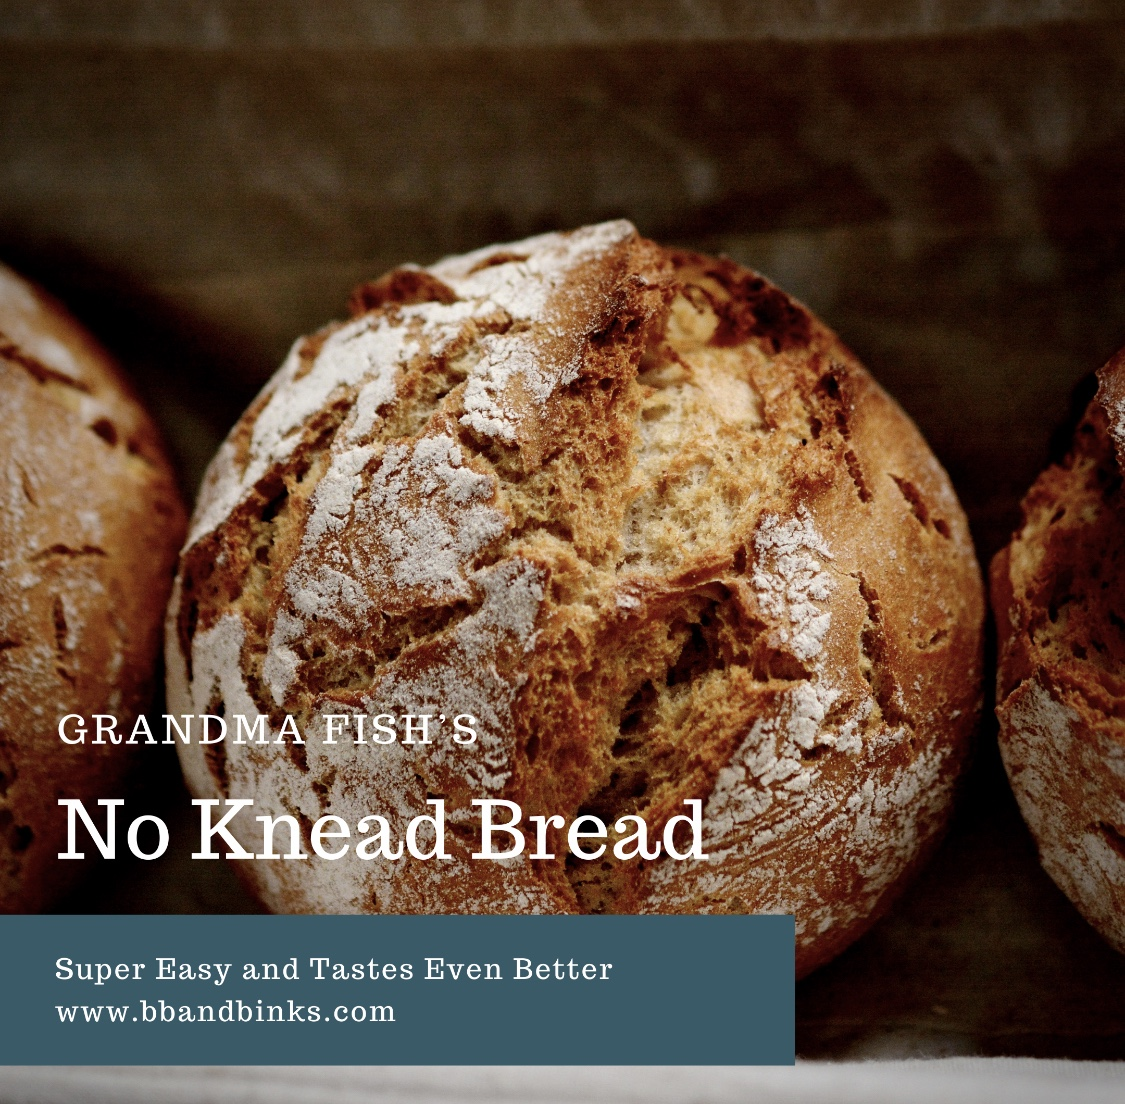 Grandma Fish's No Knead Bread by BB